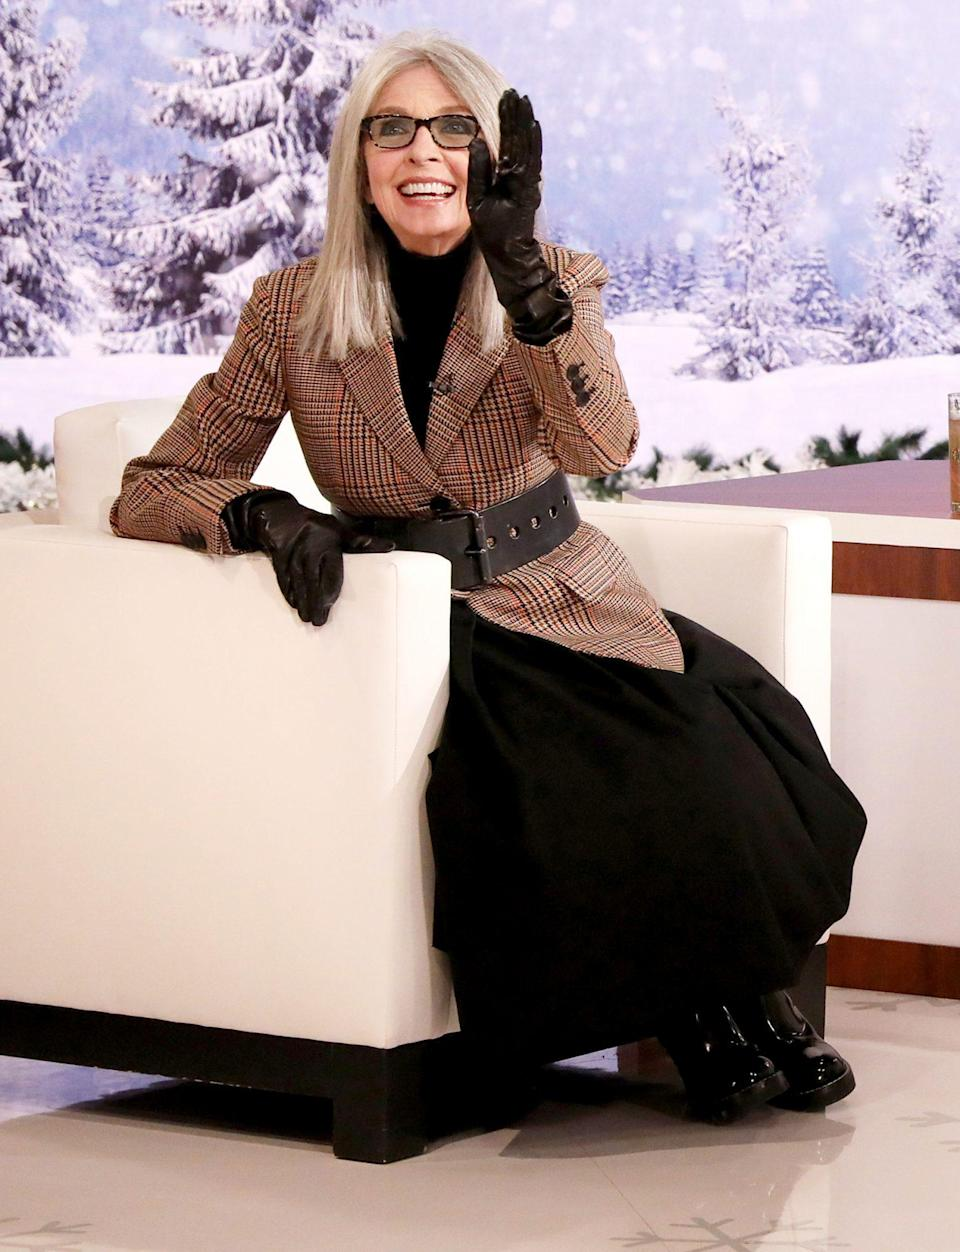 <p>Diane Keaton plays to the crowd as she helps host Ellen Degeneres spread holiday joy during <em>The Ellen Degeneres Show</em>'s 12 Days of Giveaways on Thursday's taping in Burbank, California.</p>